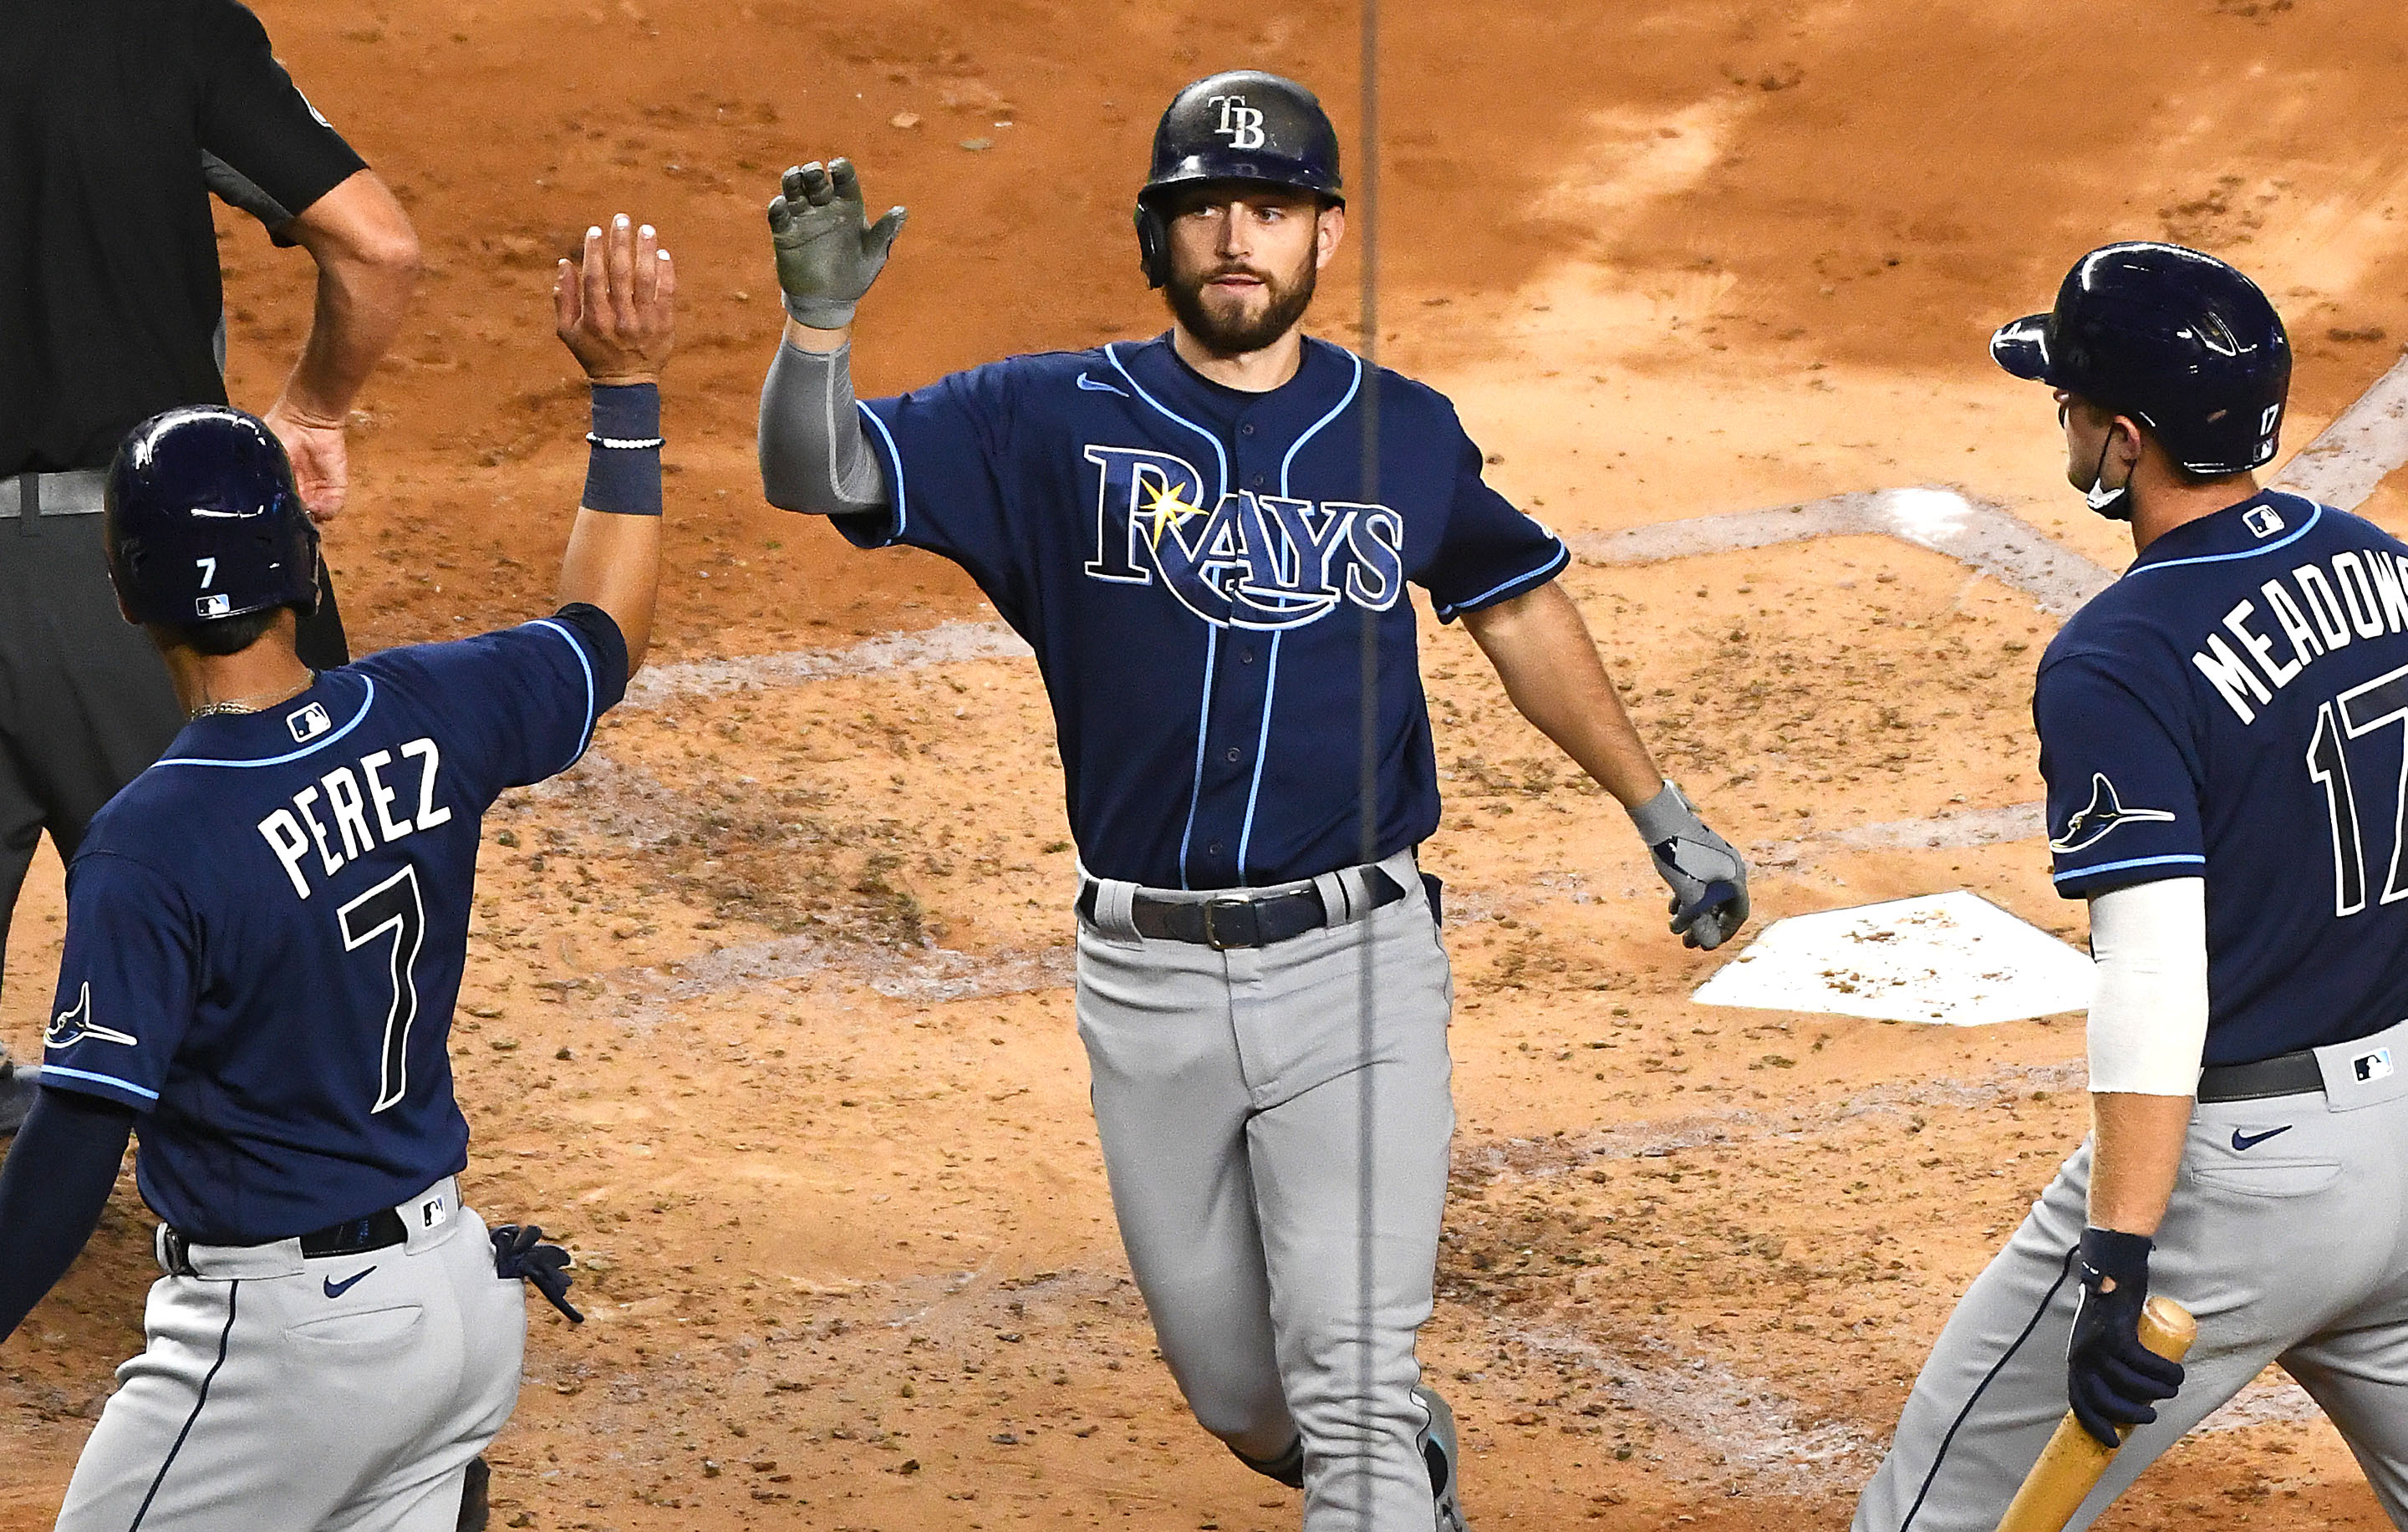 Yankees should know by now that Rays aren't going away